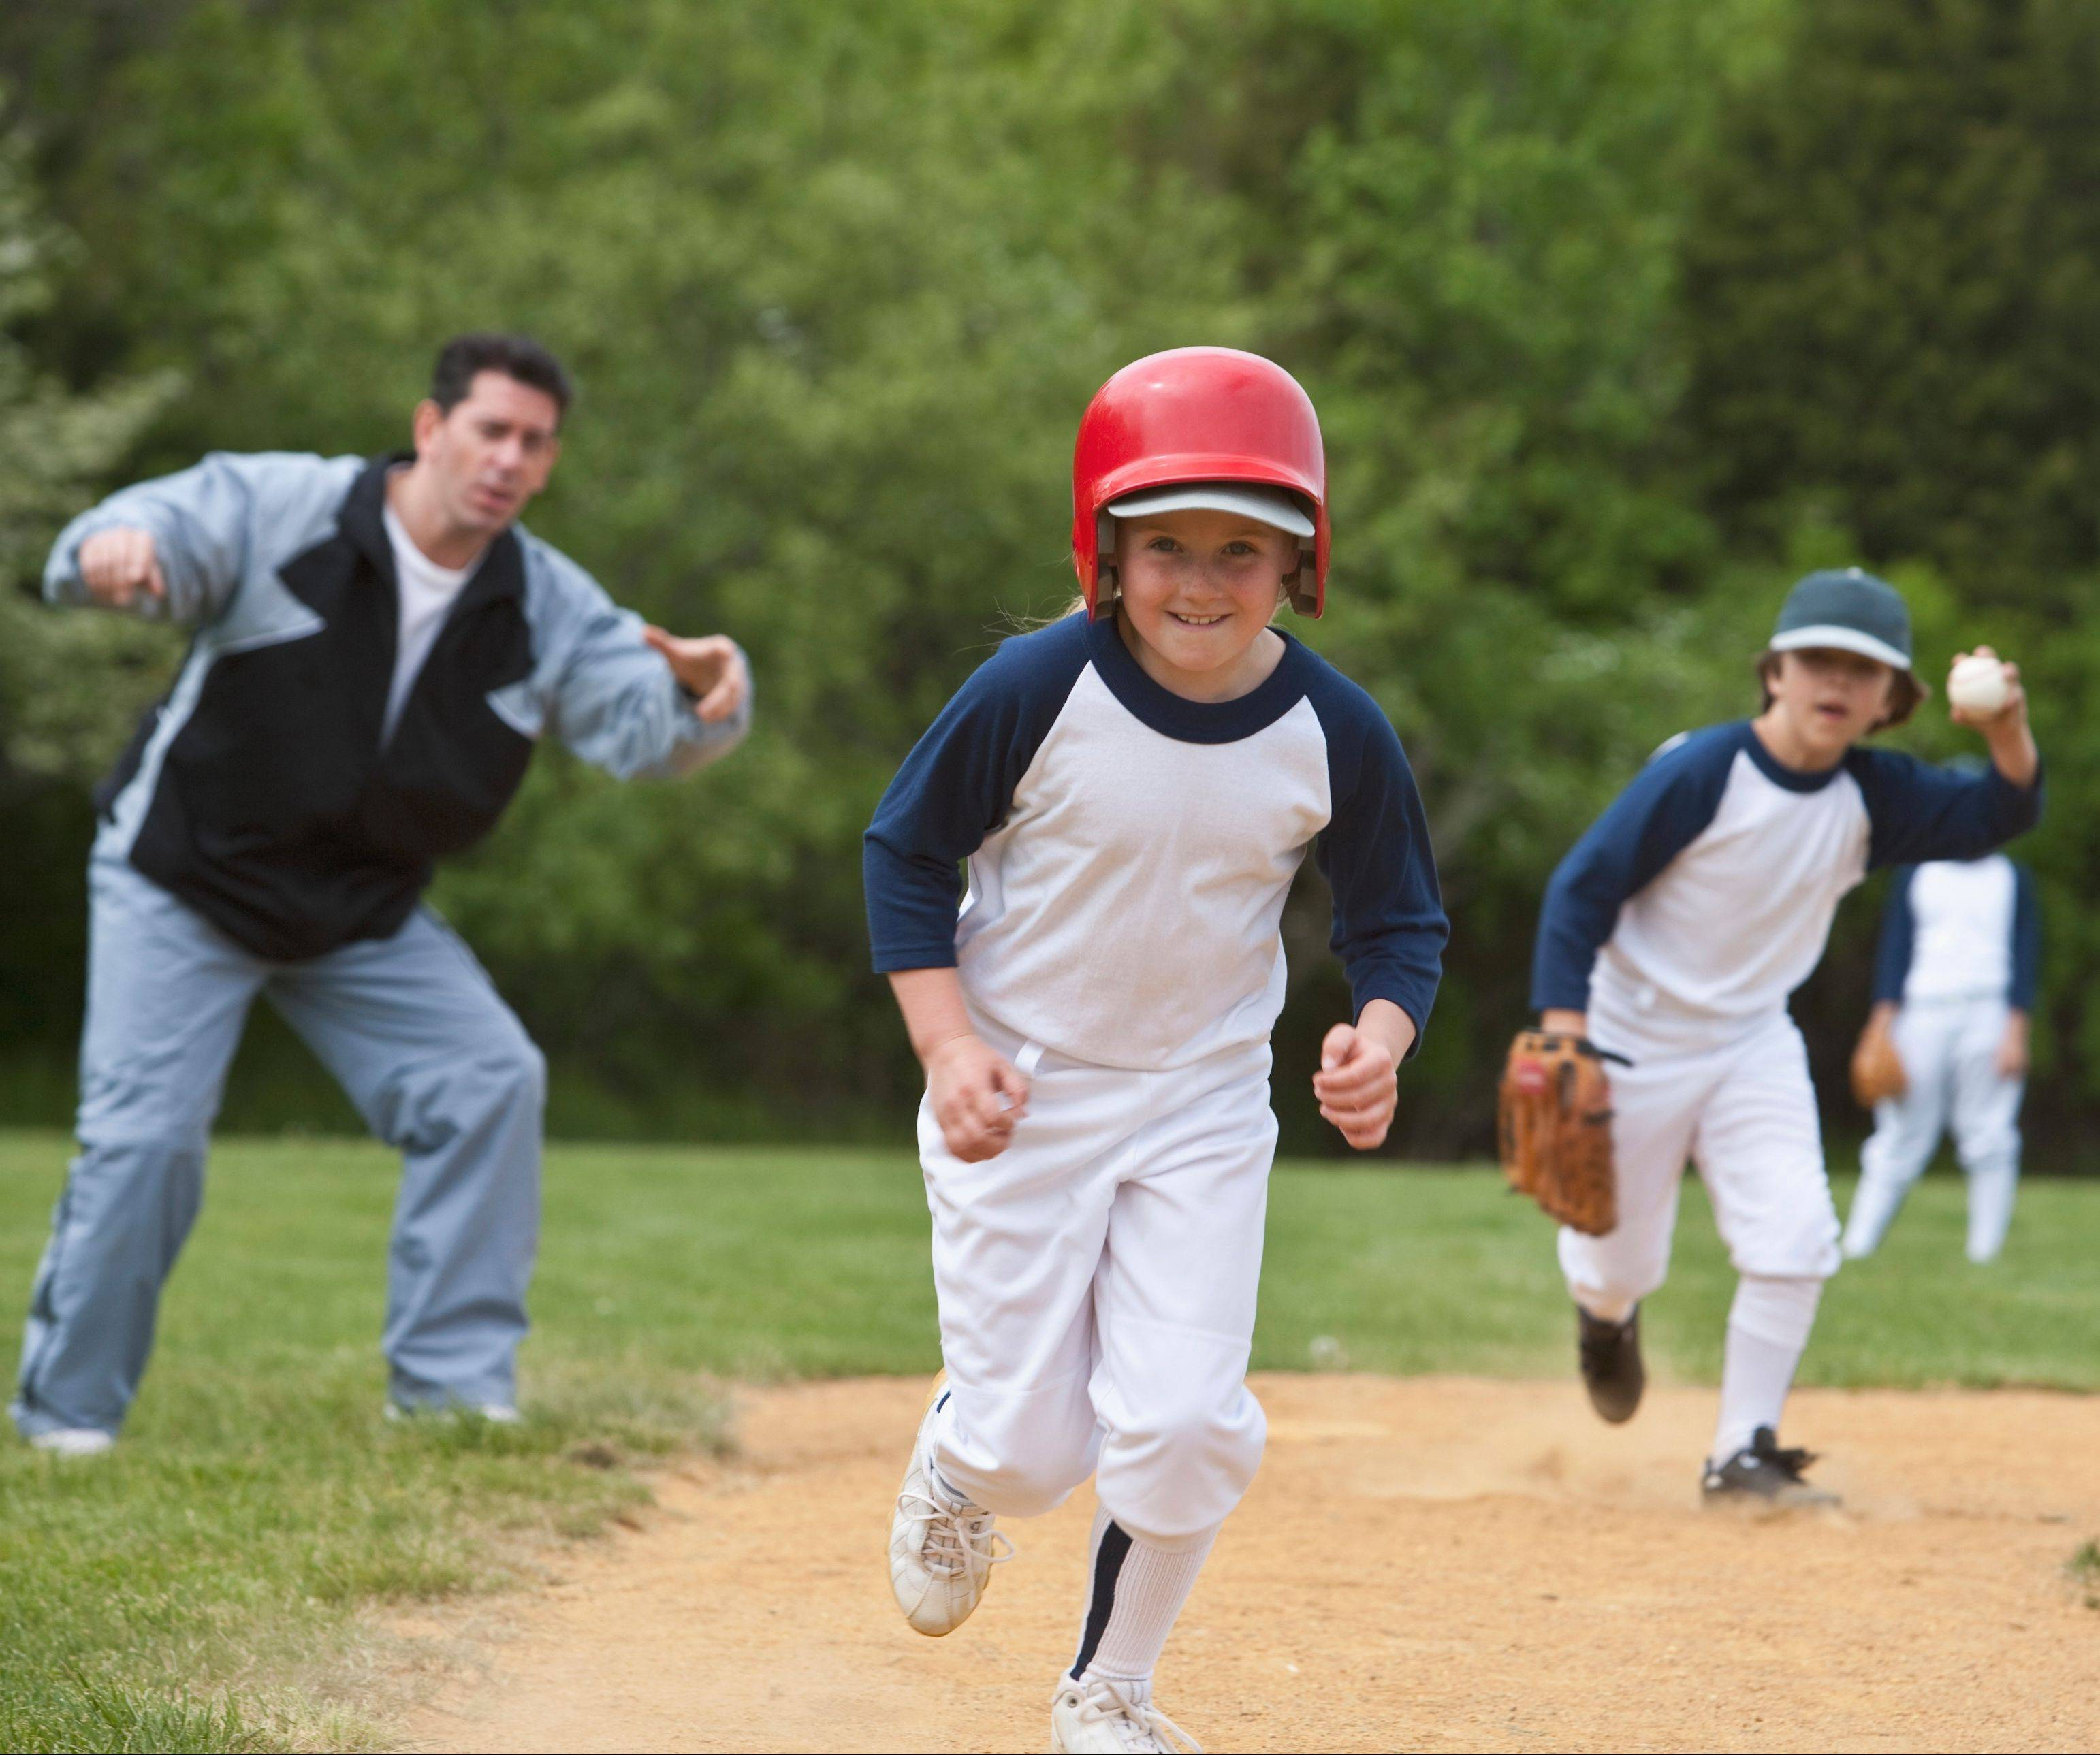 Costs vs. gains: Taking youth sports to the next level